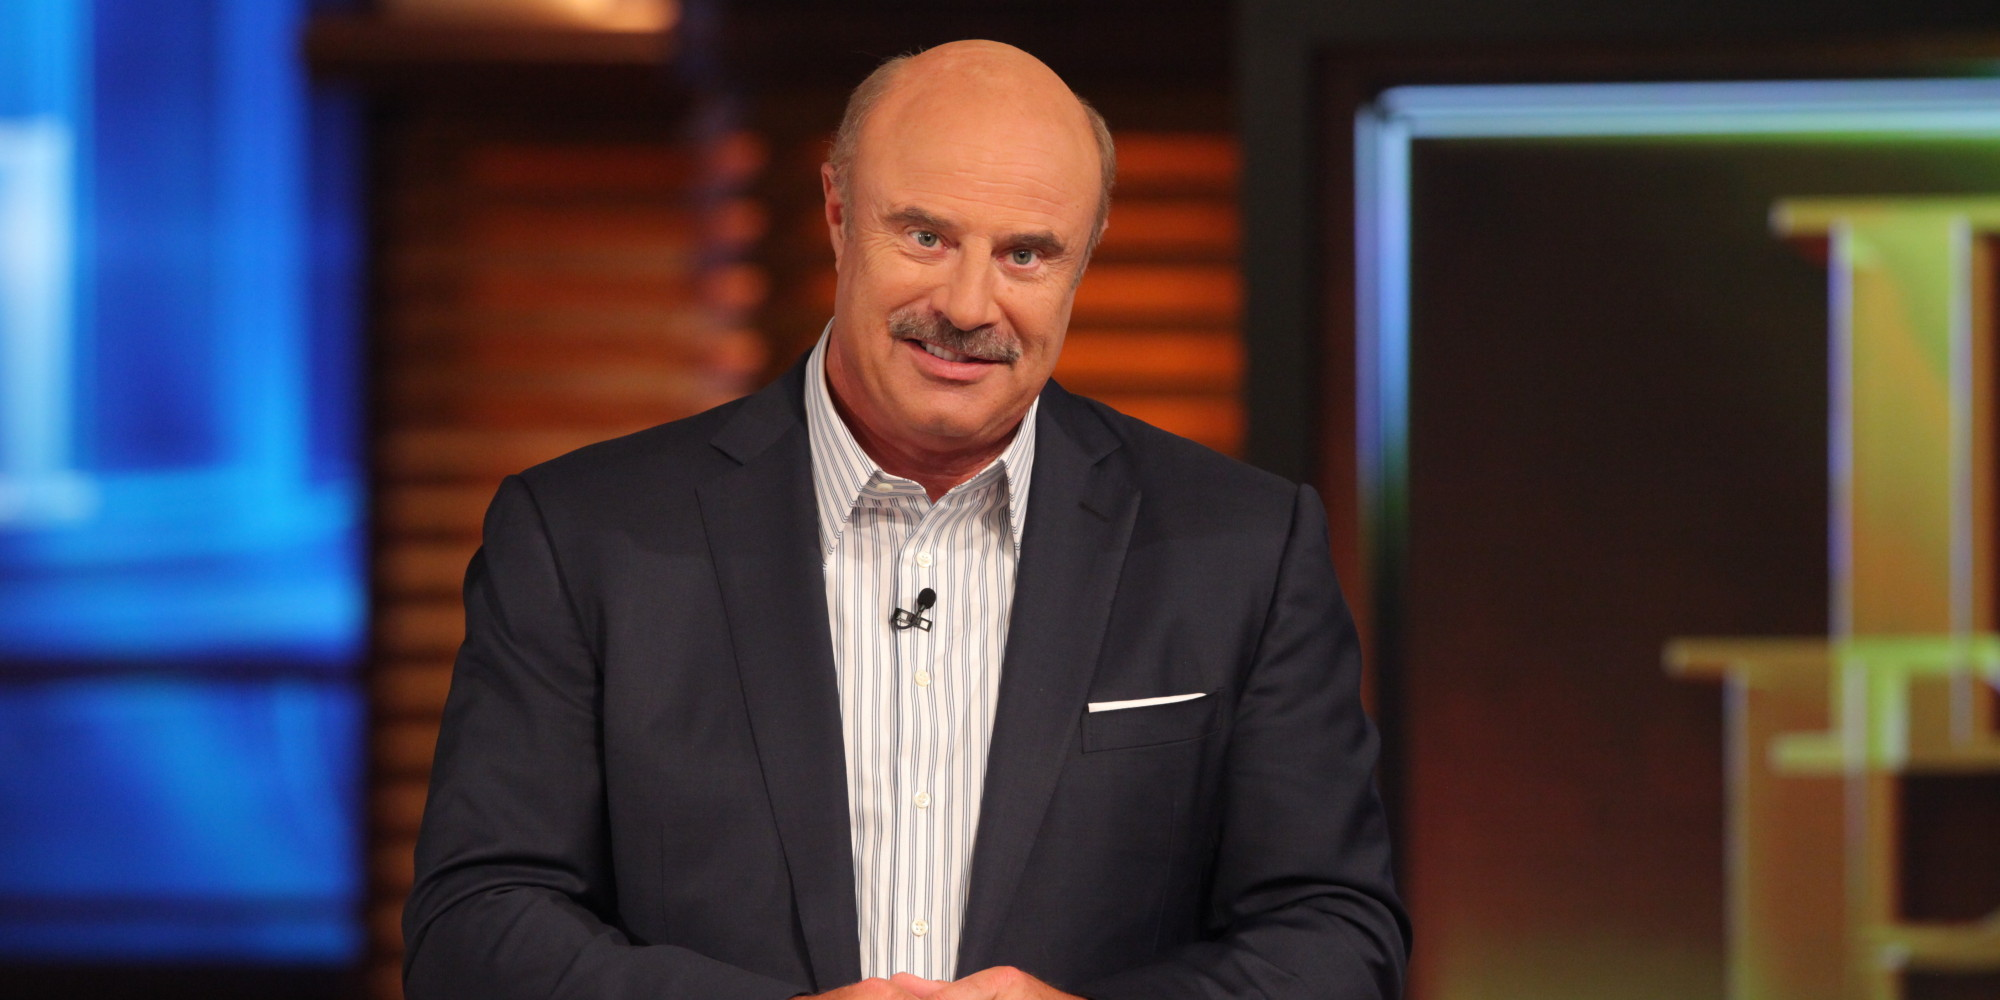 Dr. Phil's Family, Weight Loss, And You